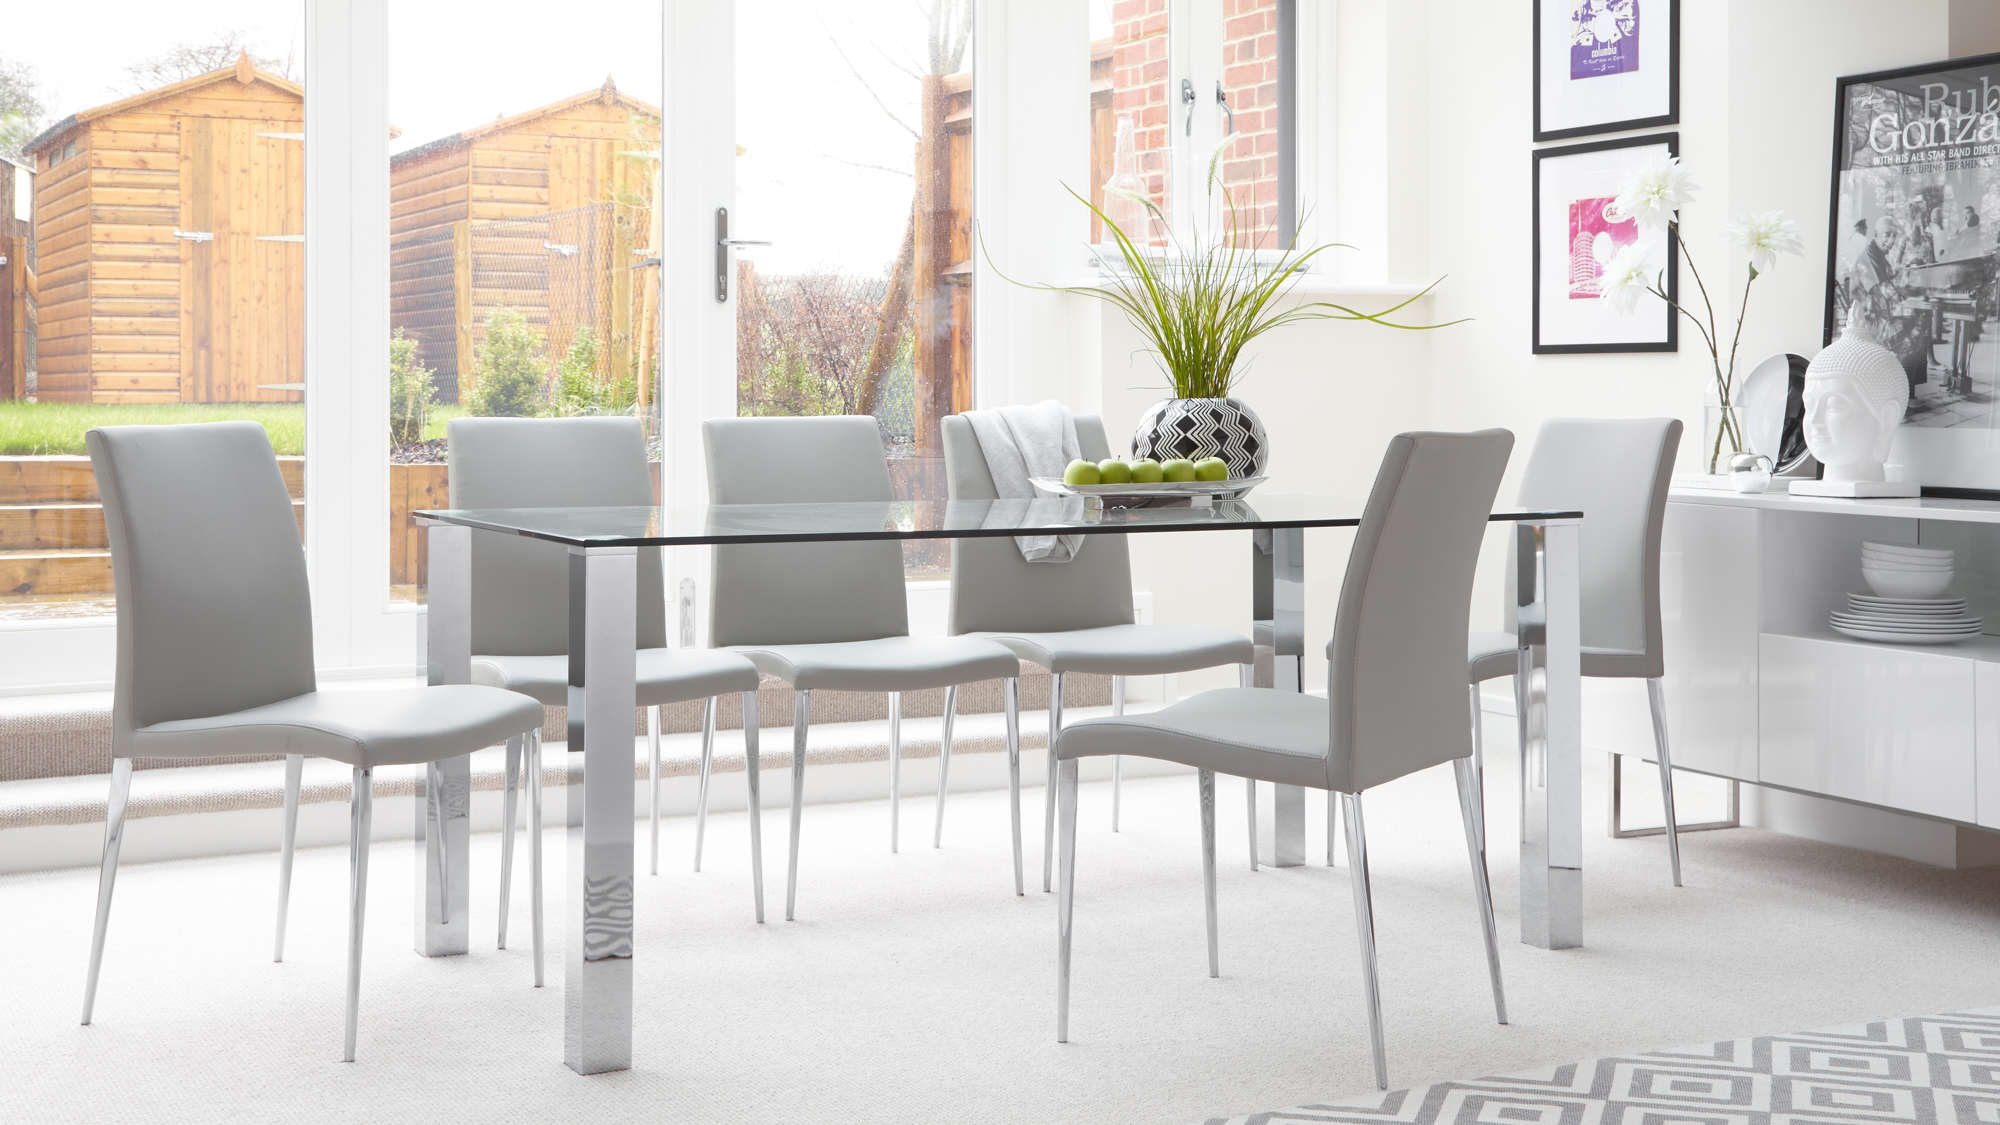 6 x Elise Dining Chair The depth from the front of the ...